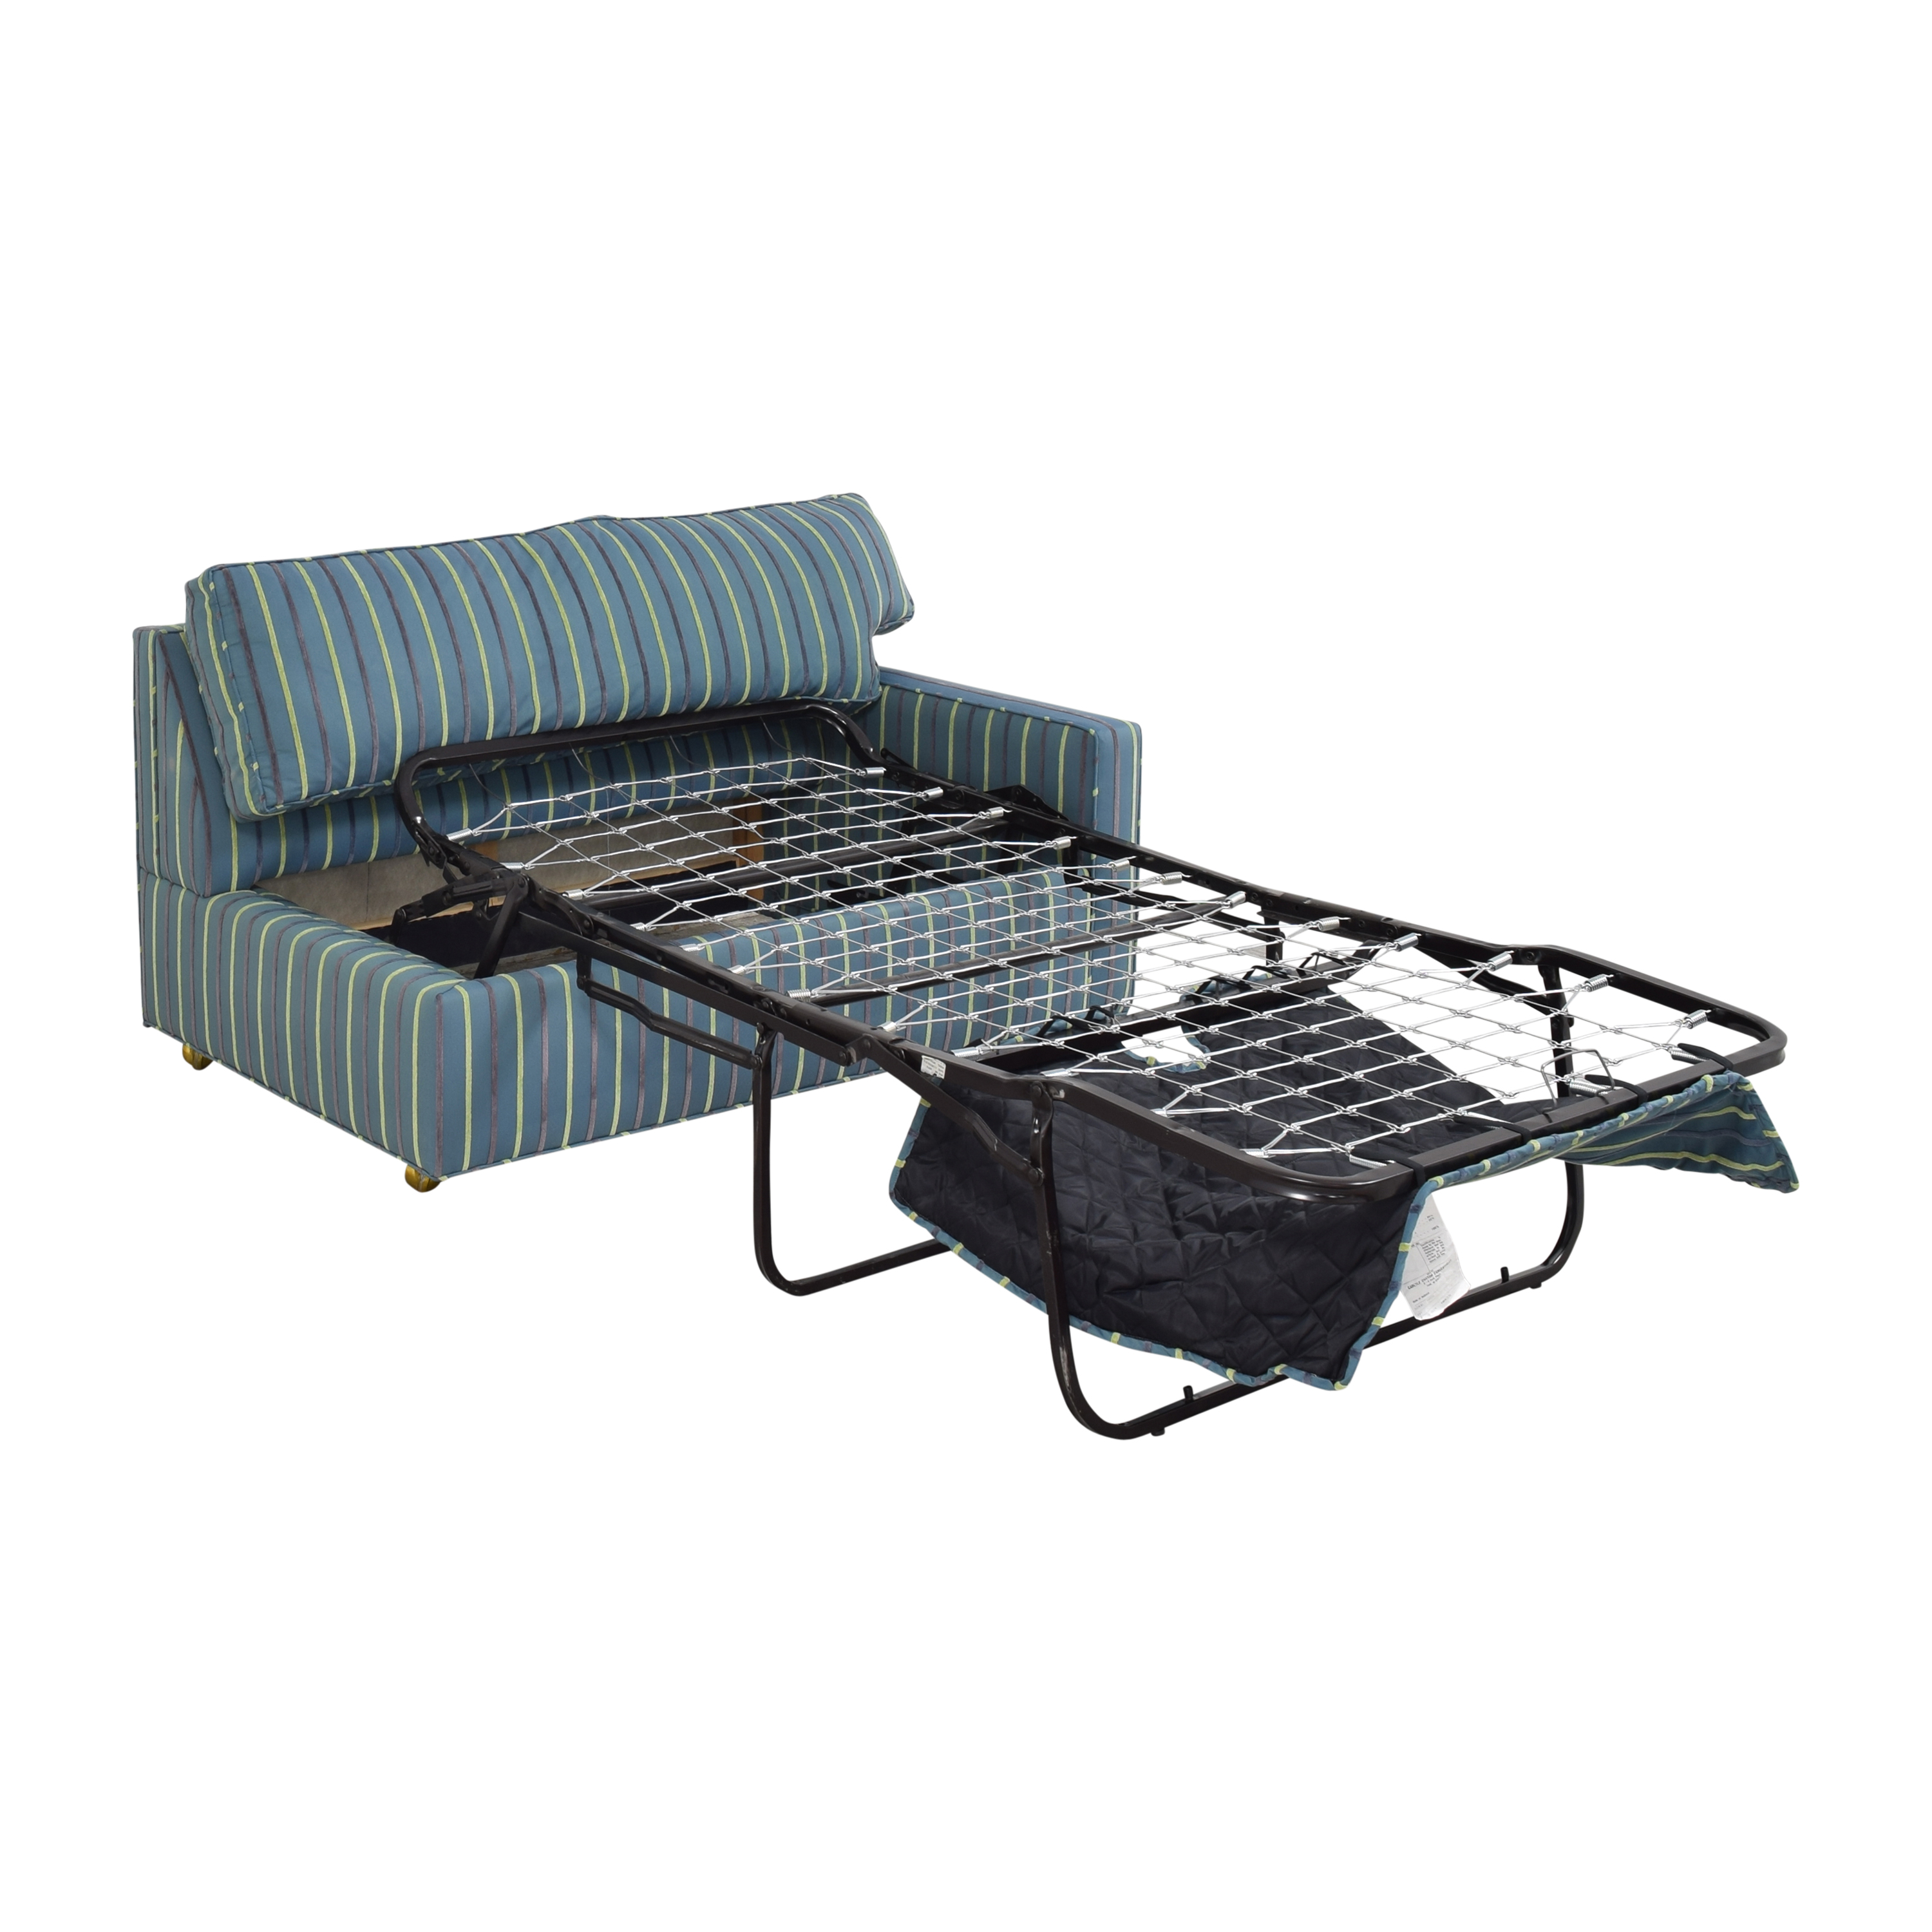 Carlyle Carlyle Striped Single Arm Sleeper Sofa for sale